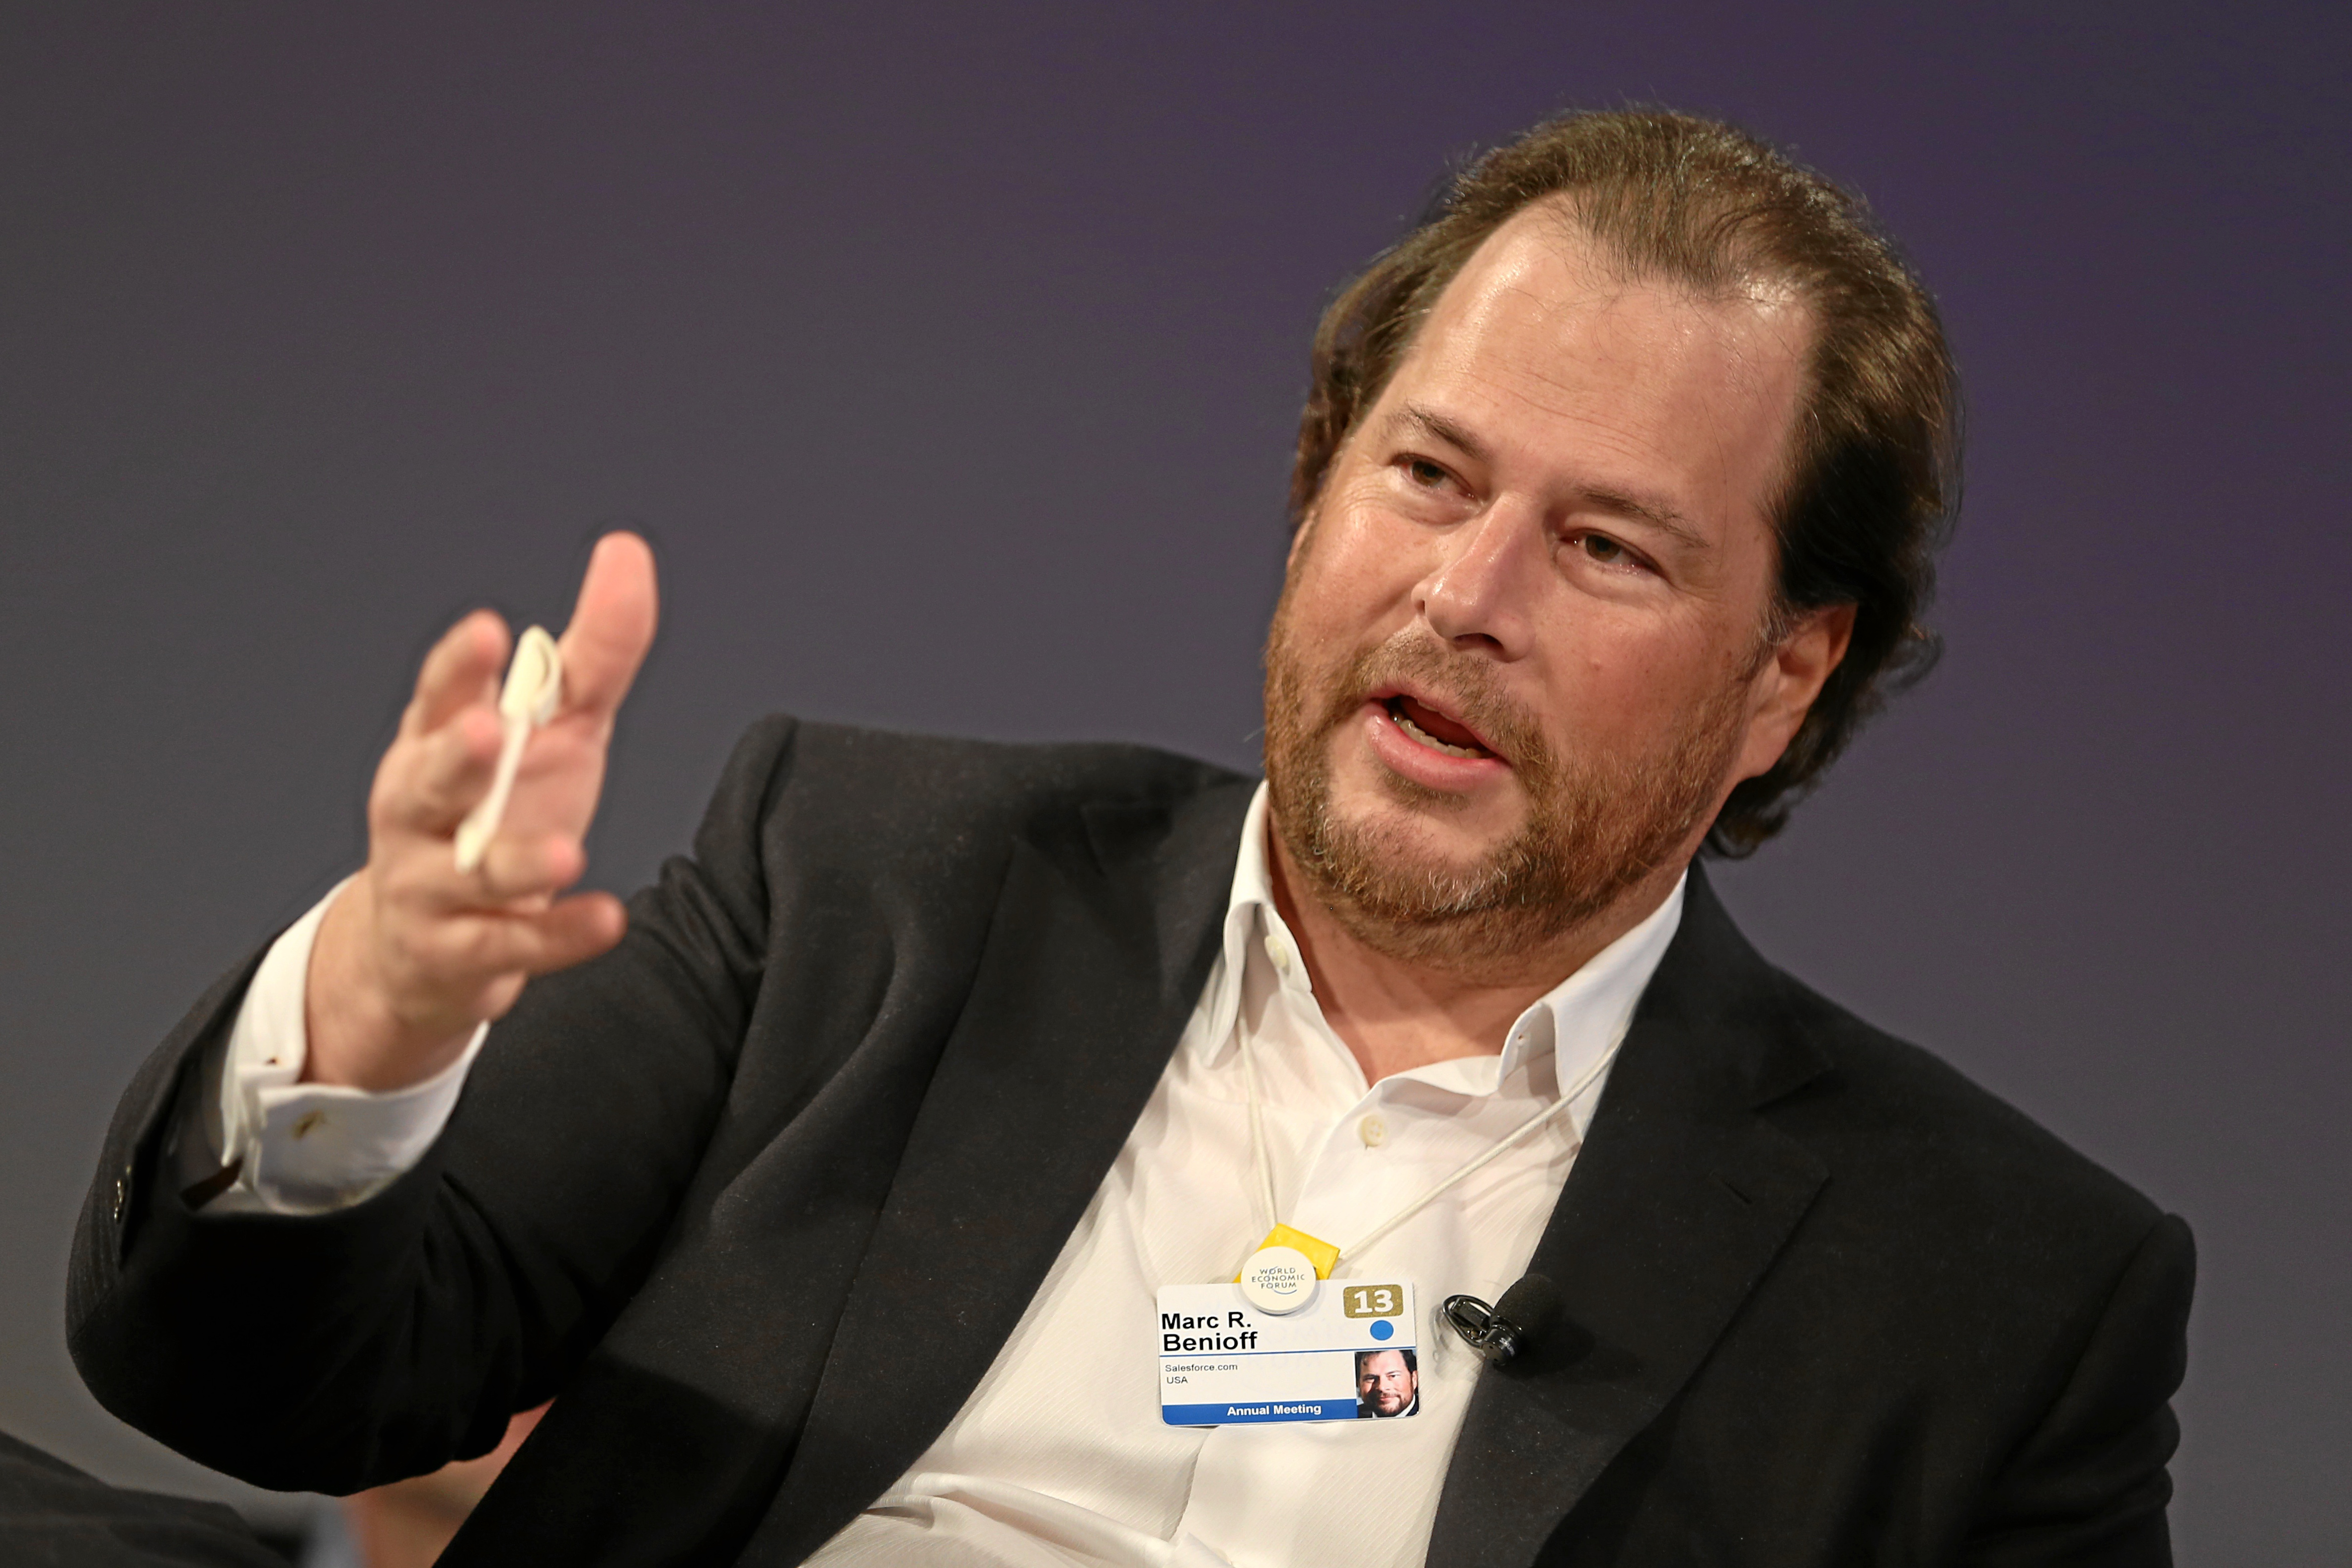 The claims are a stark contrast to Salesforce's well-curated persona